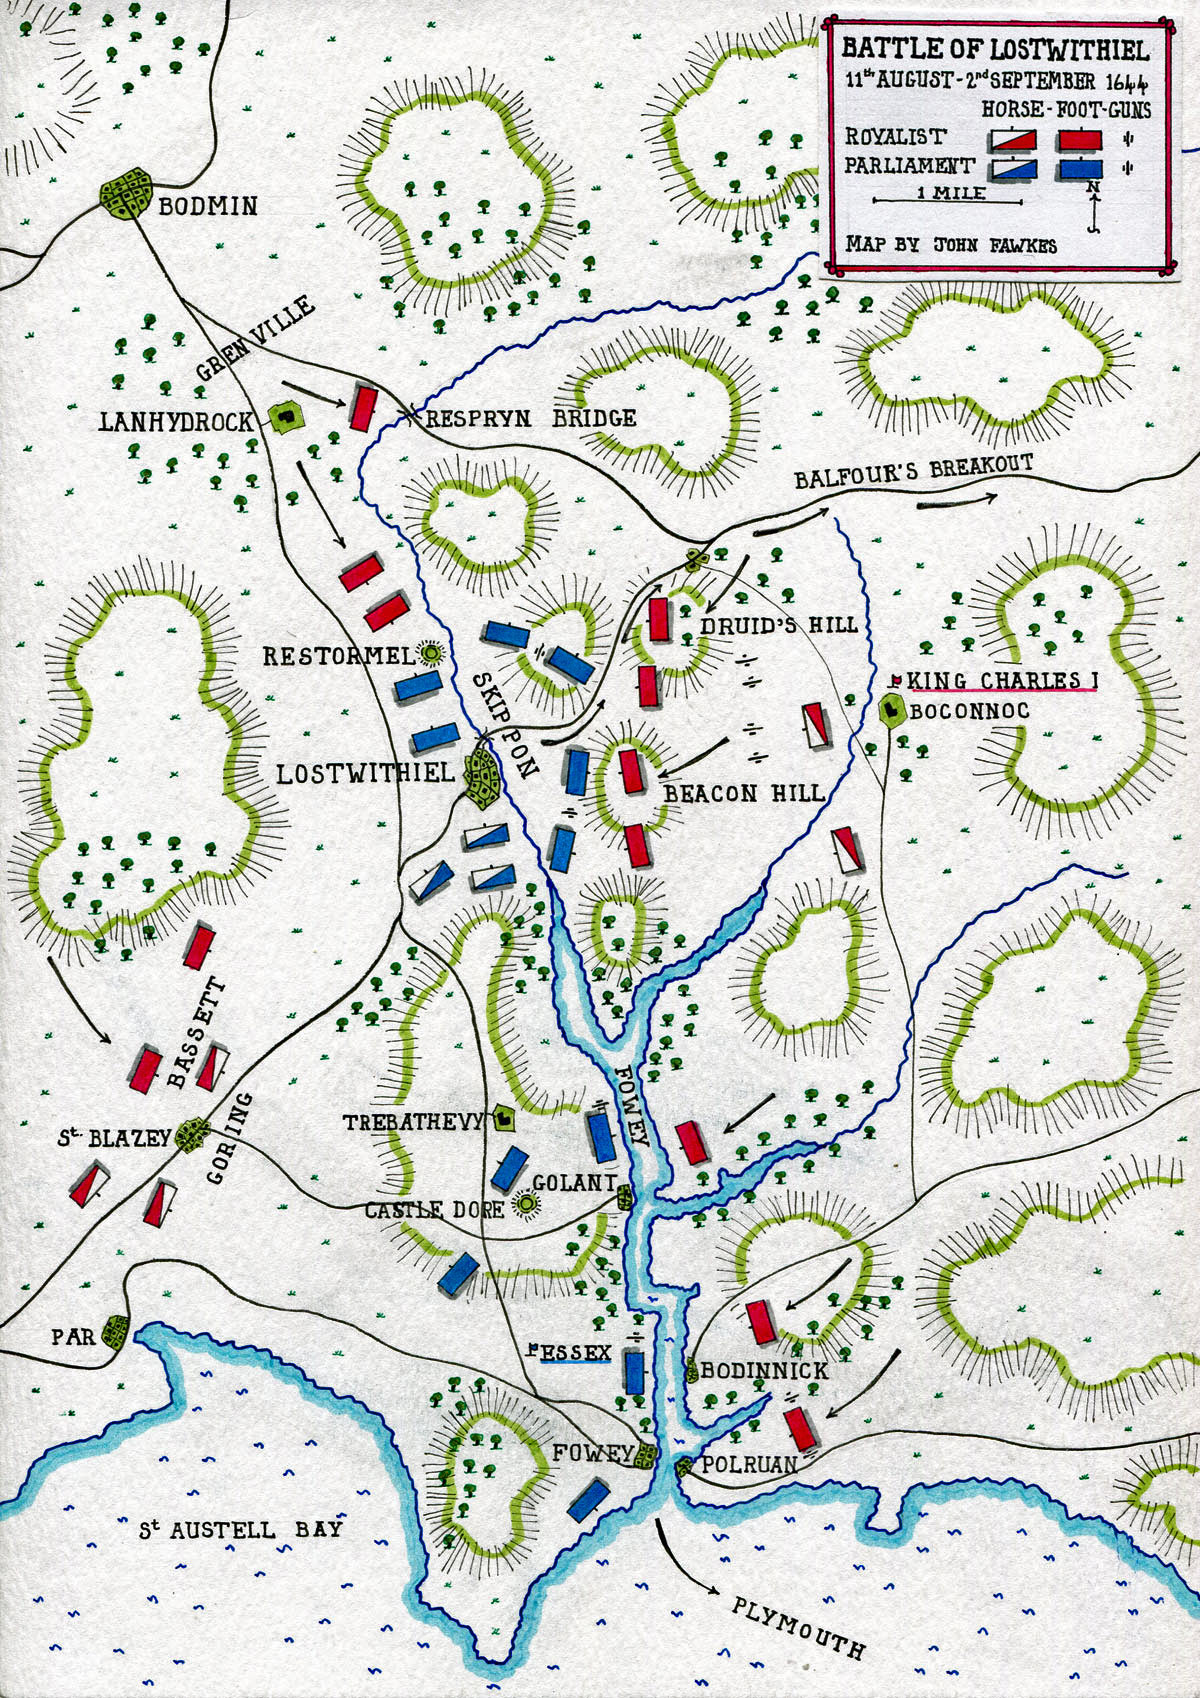 Map of the Battle of Lostwithiel 11th August to 2nd September 1644 in the English Civil War: map by John Fawkes